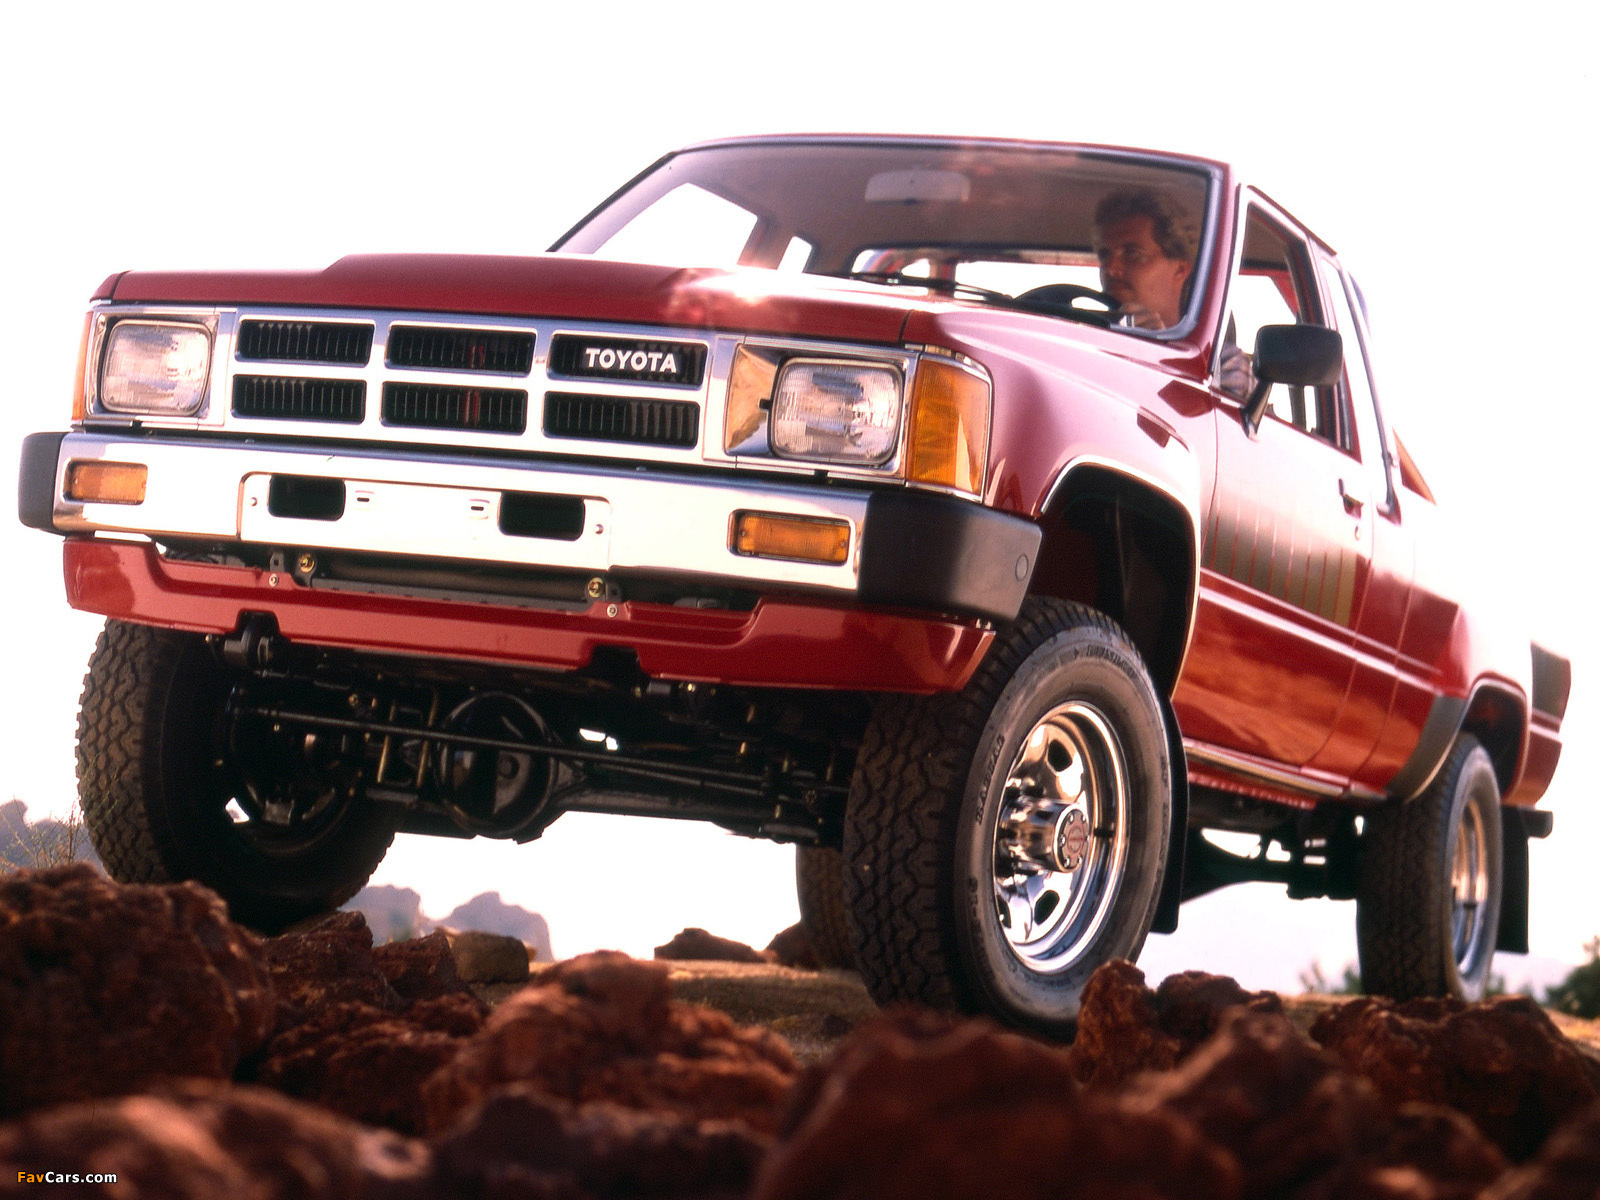 Wallpapers of Toyota Truck Xtracab 4WD 198486 1600 x 1200 1600x1200